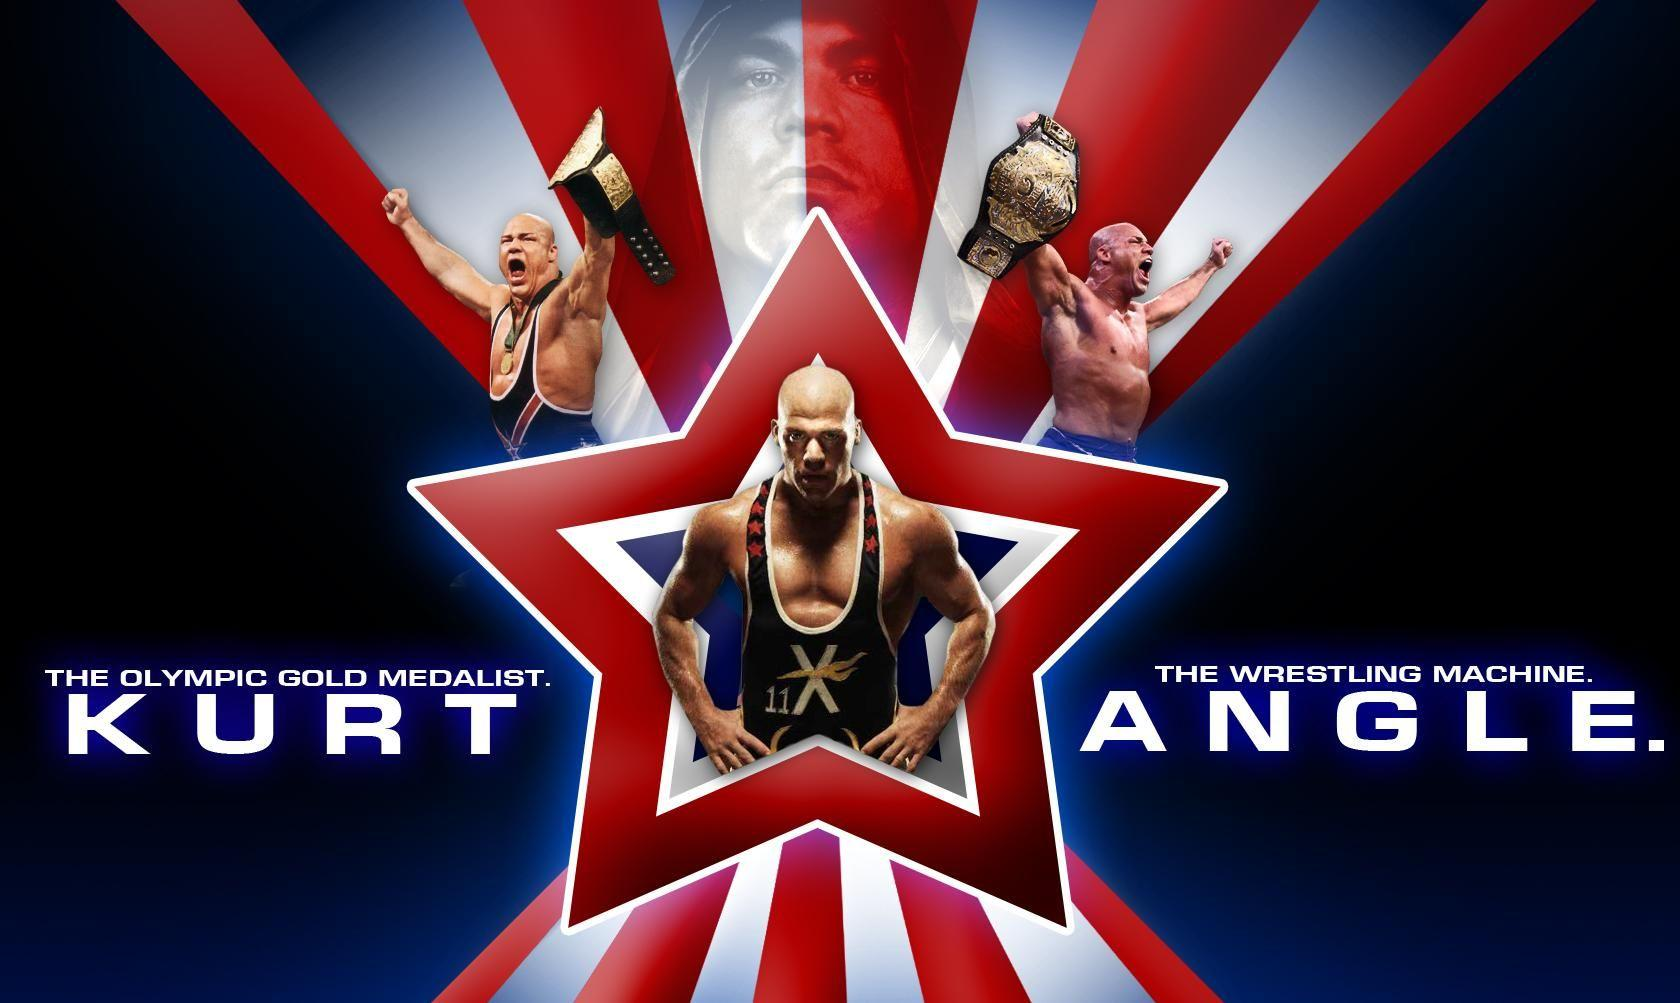 Wallpaper of Kurt Angle - WWE Superstars, WWE Wallpapers, WWE PPV's